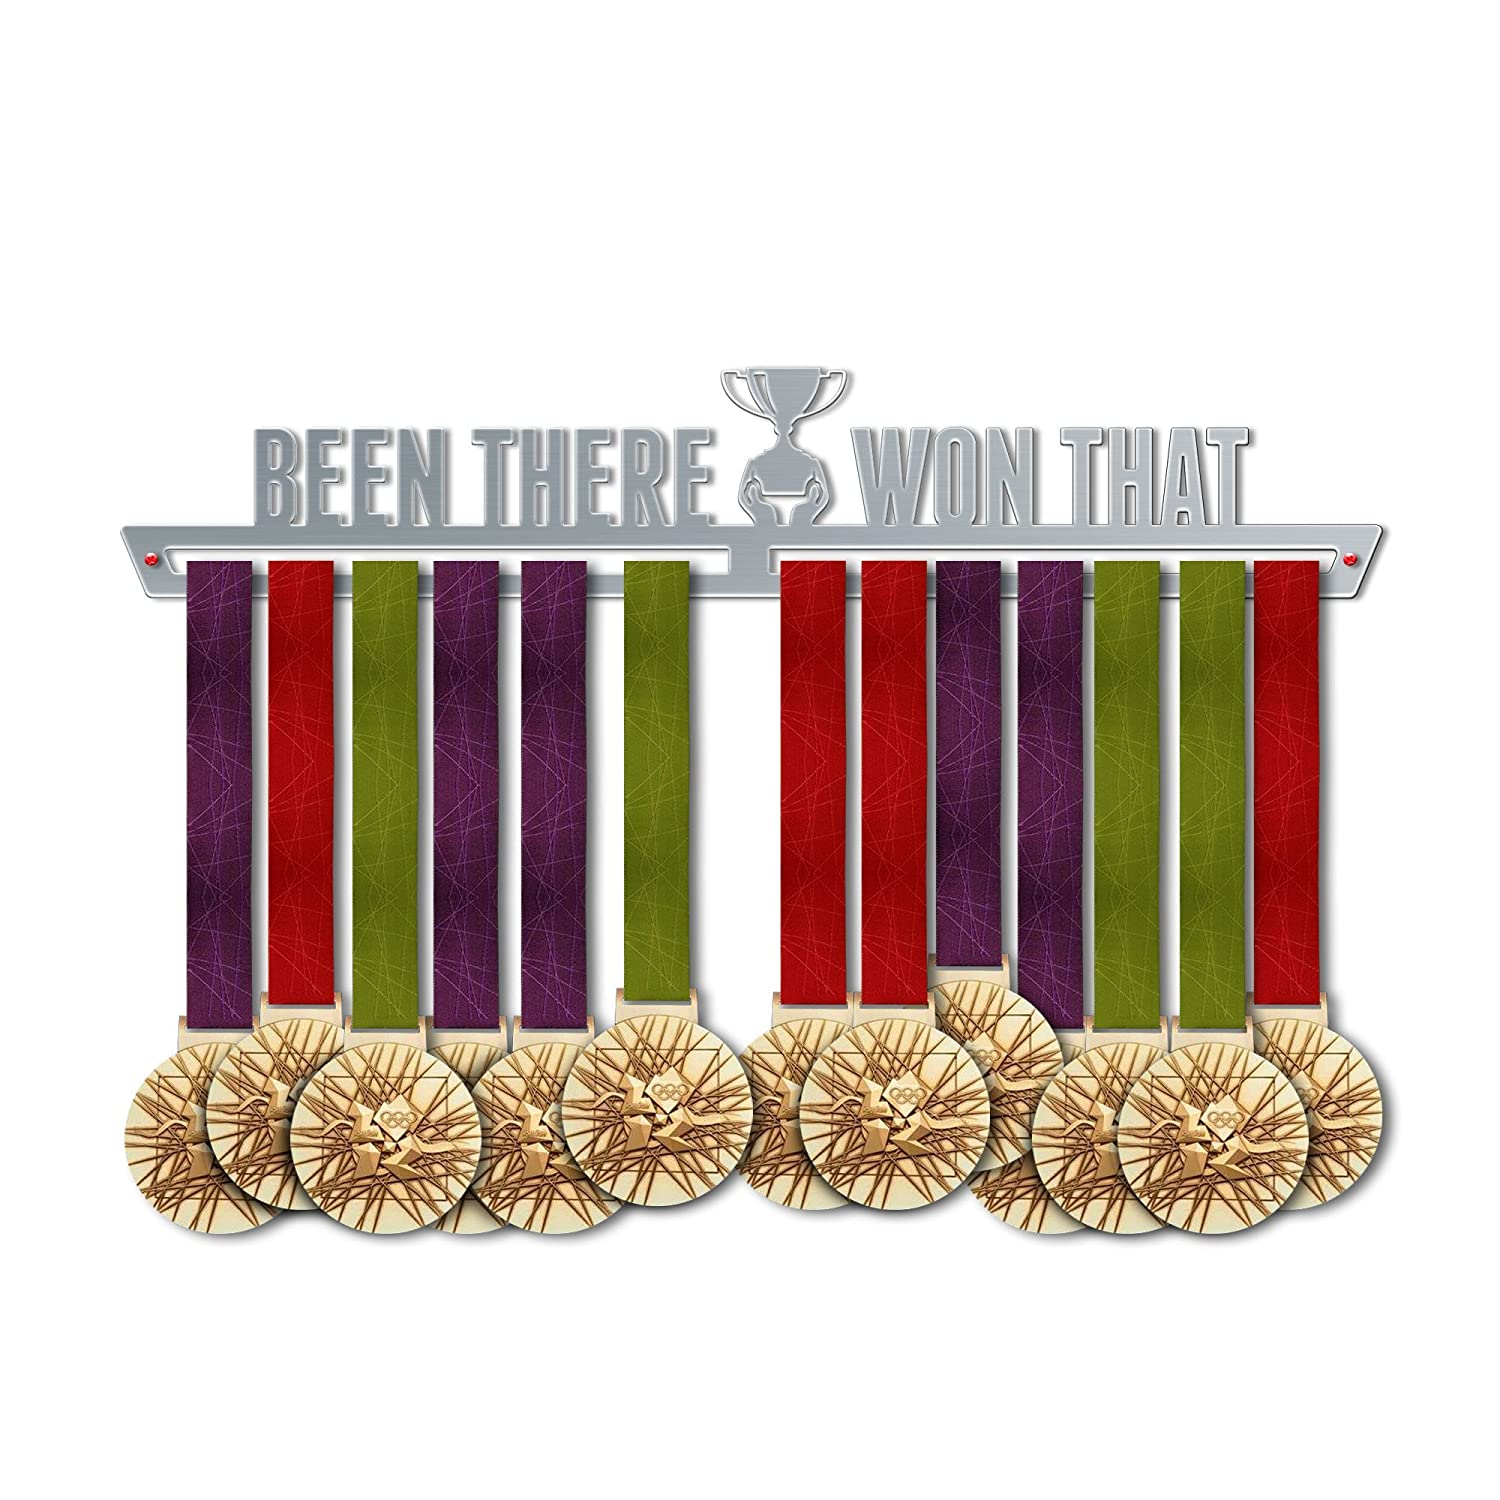 Been There Won Thatメダルハンガー表示  Motivationalメダルハンガー ステンレススチールMedal表示  by victoryhangers – The Best Gift For Champions 。 B079HTDWXR  29.53 ミリメートル